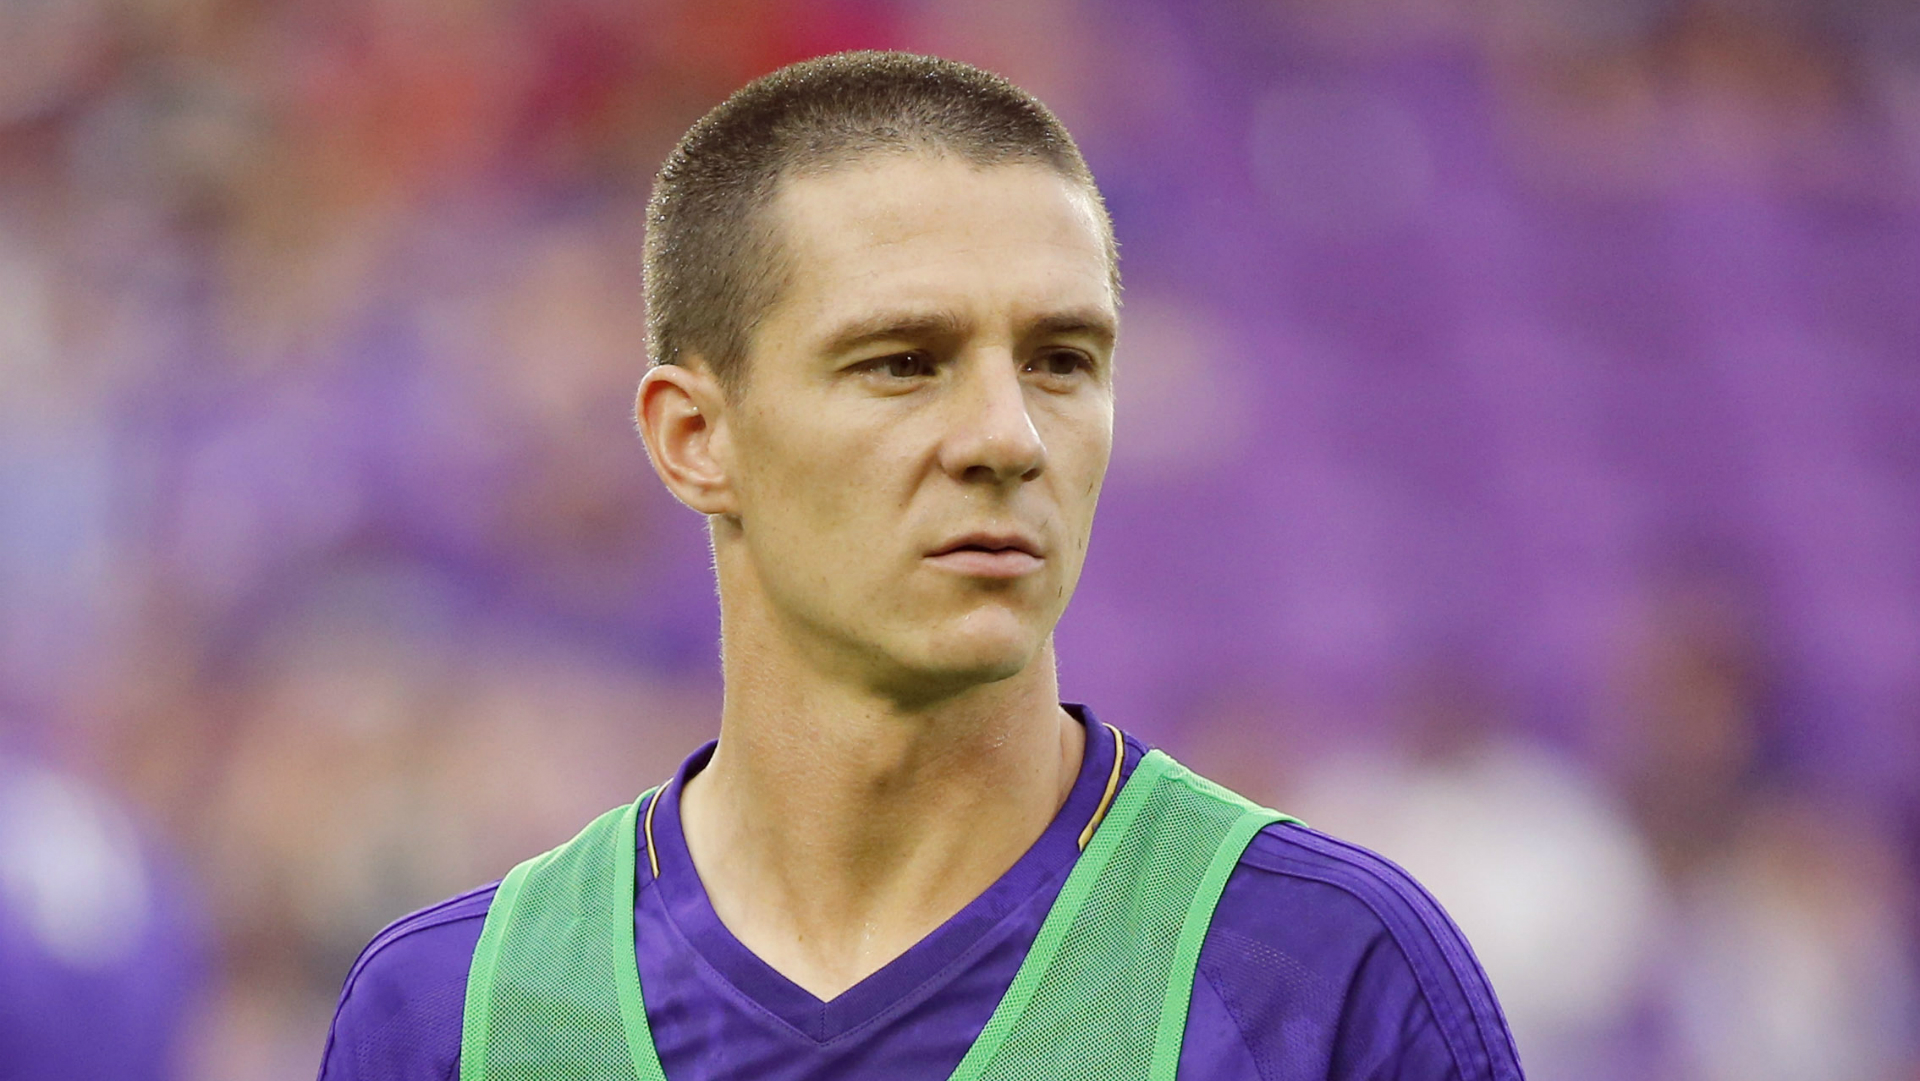 Orlando's Johnson arrested for domestic battery, suspended by MLS